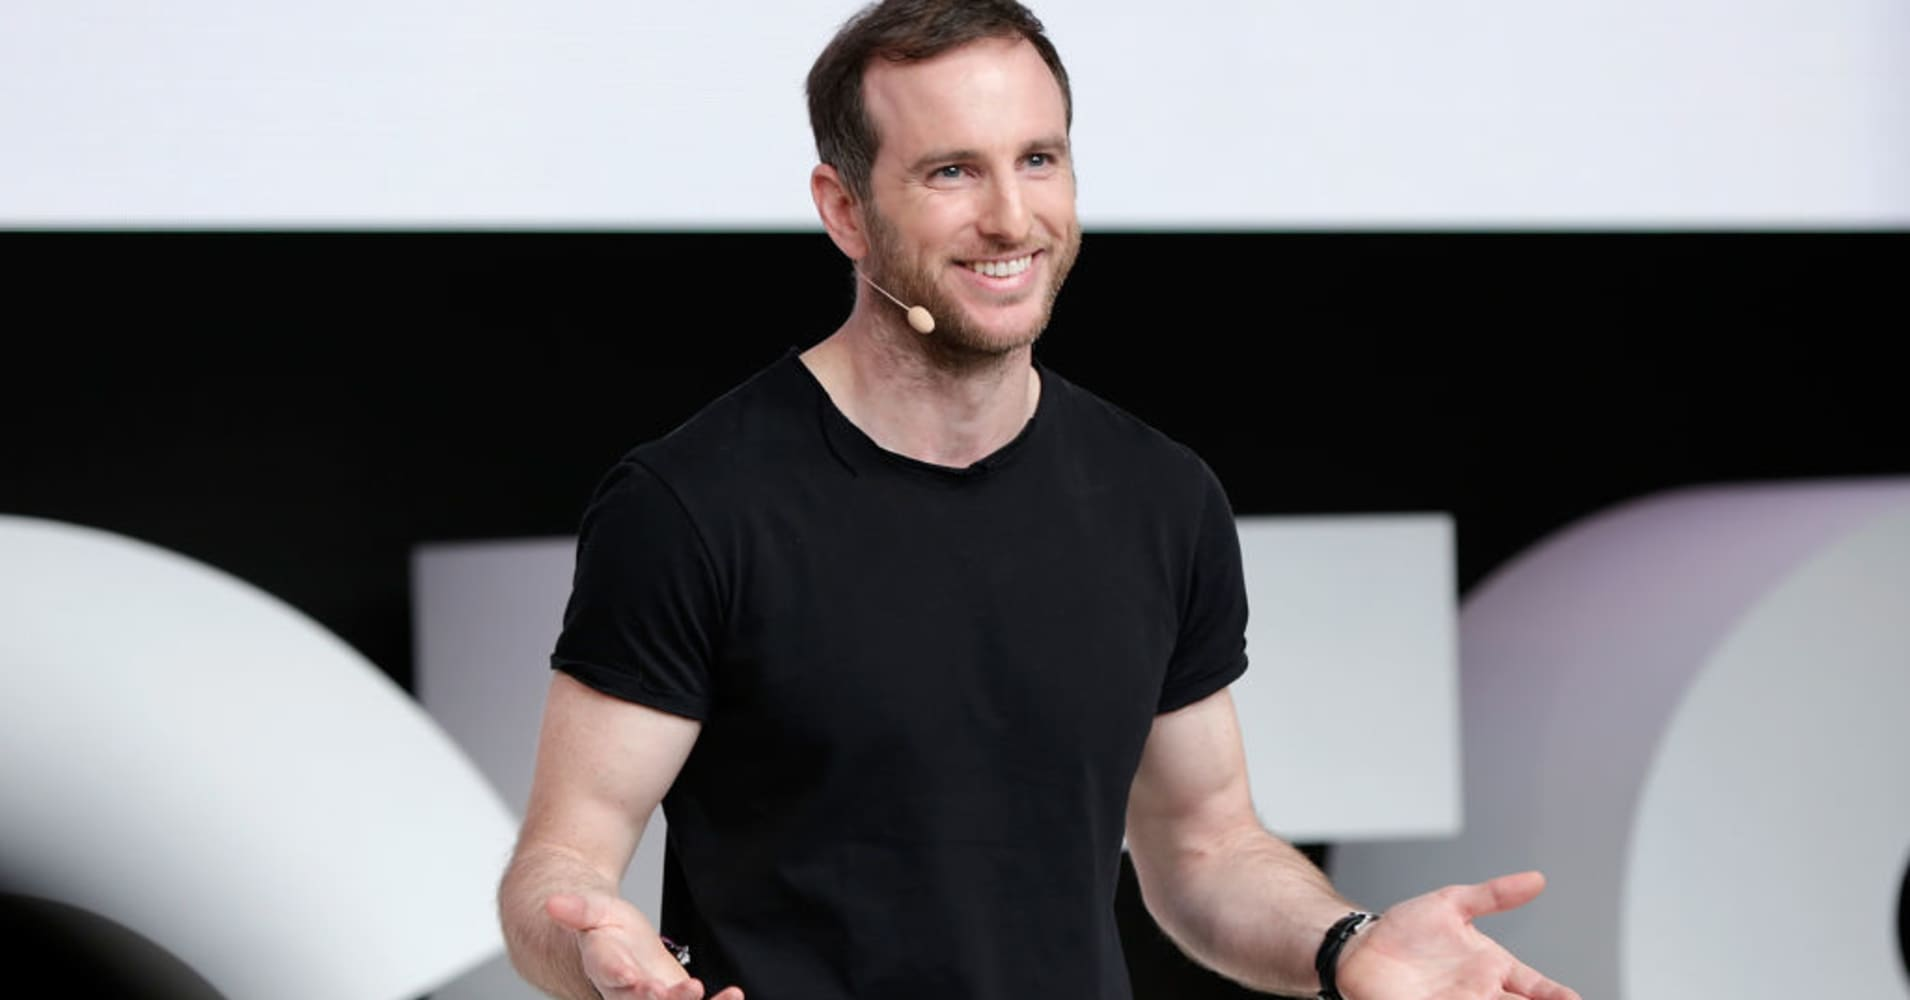 Joe Gebbia speaks on stage during #BoFVOICES on November 30, 2017 in Oxfordshire, England